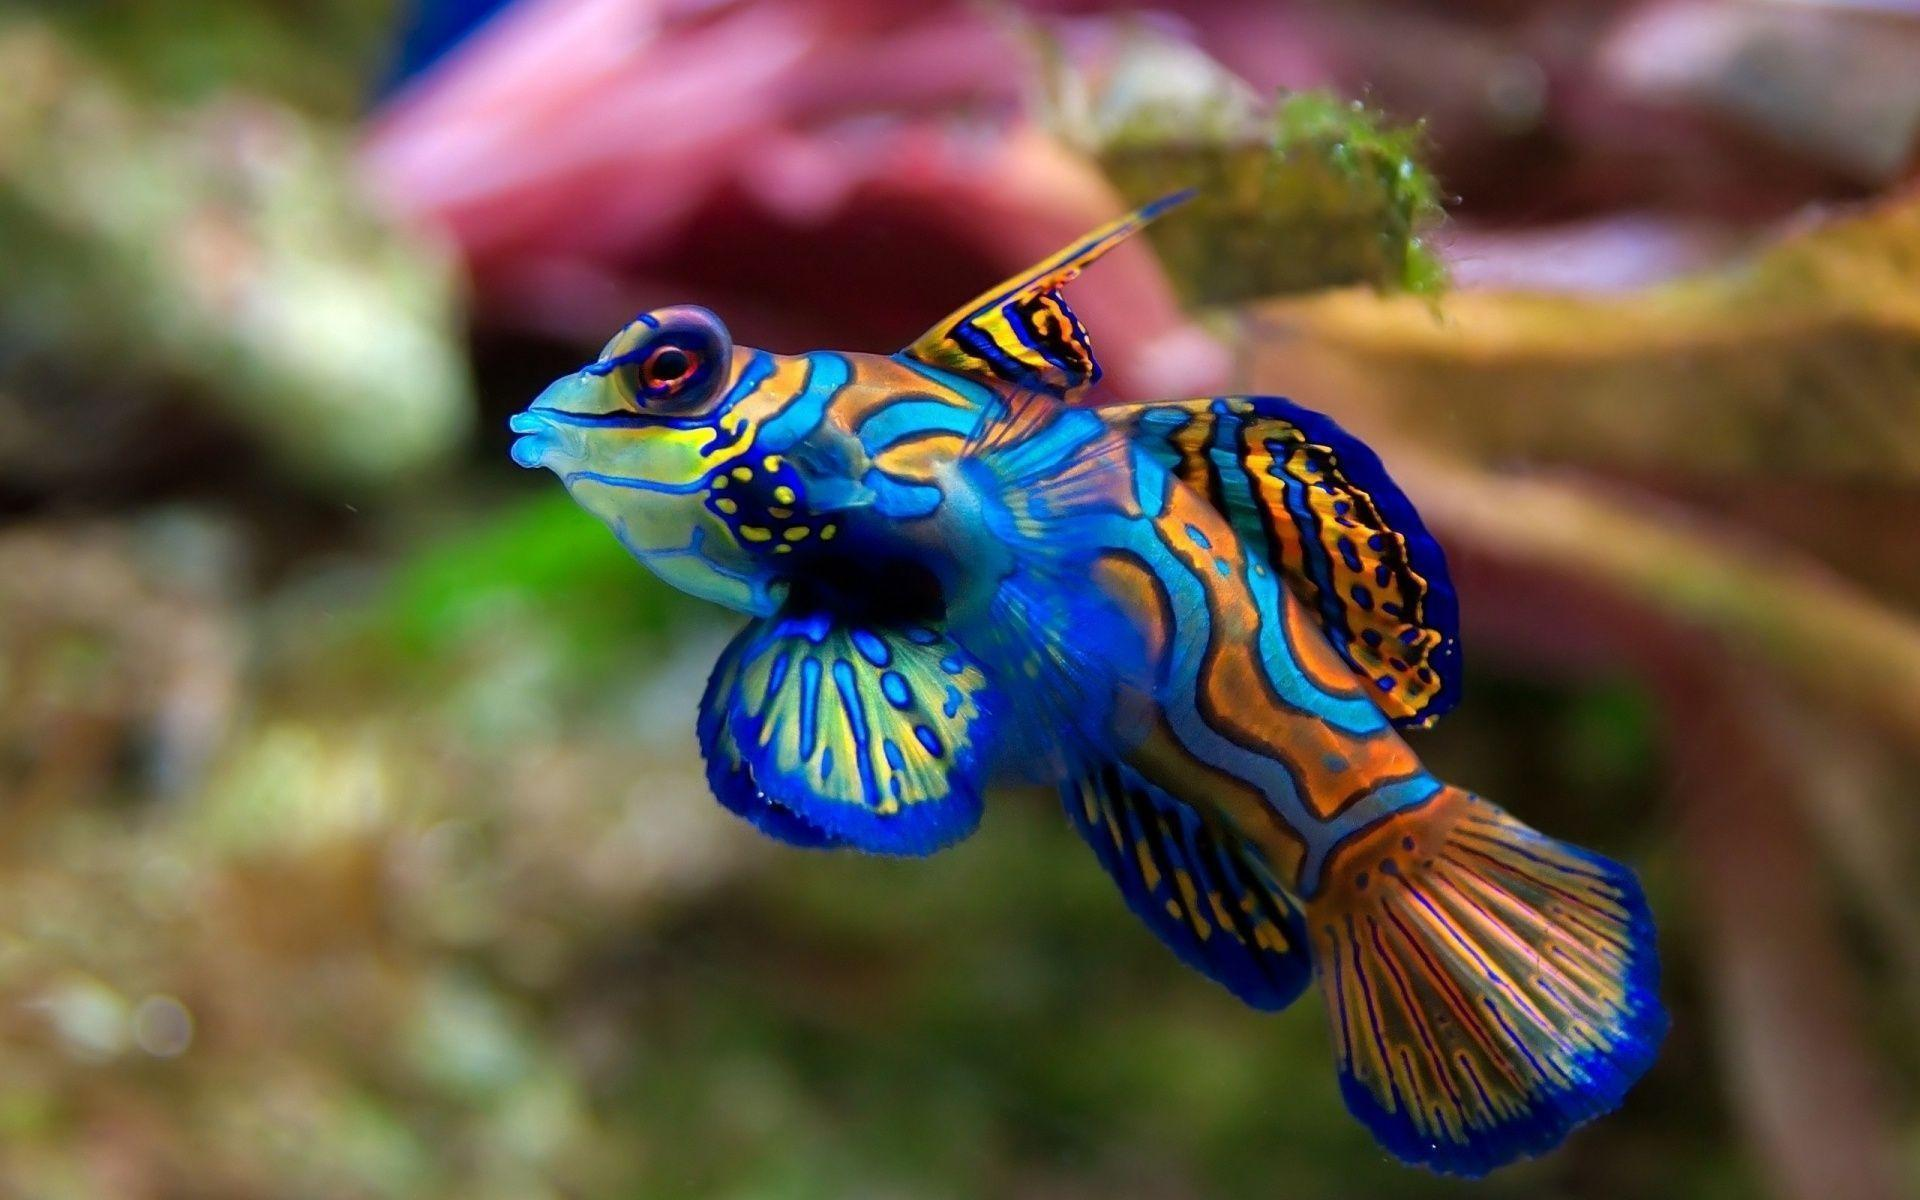 Tropical fish wallpapers hd Backgrounds